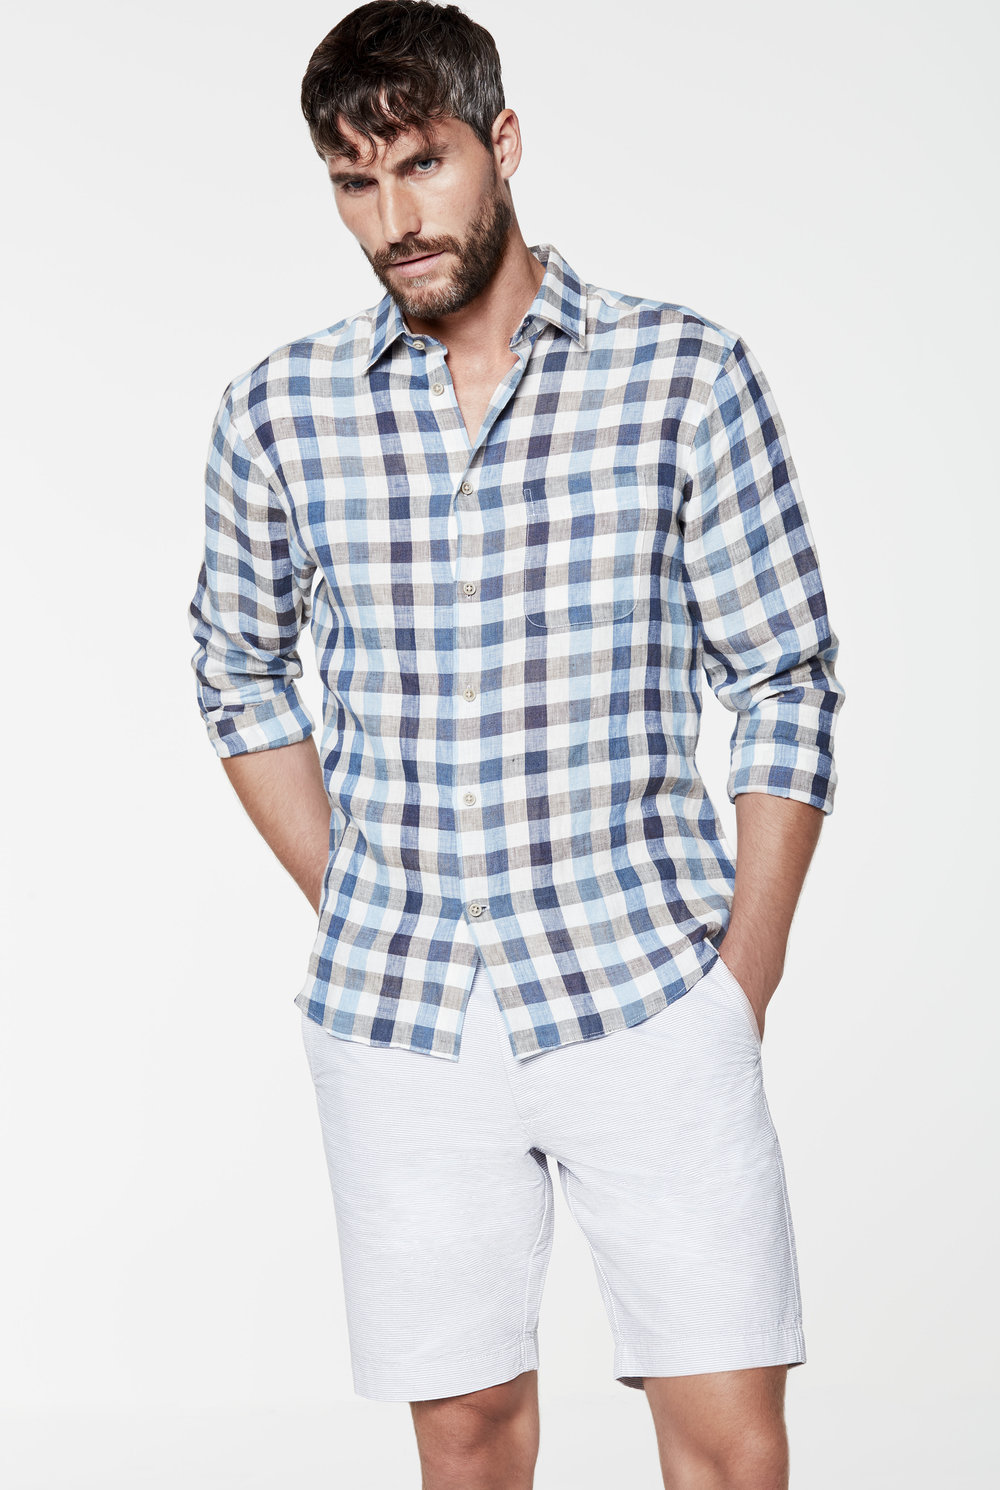 M&S High Summer Collection 17 (60).jpg